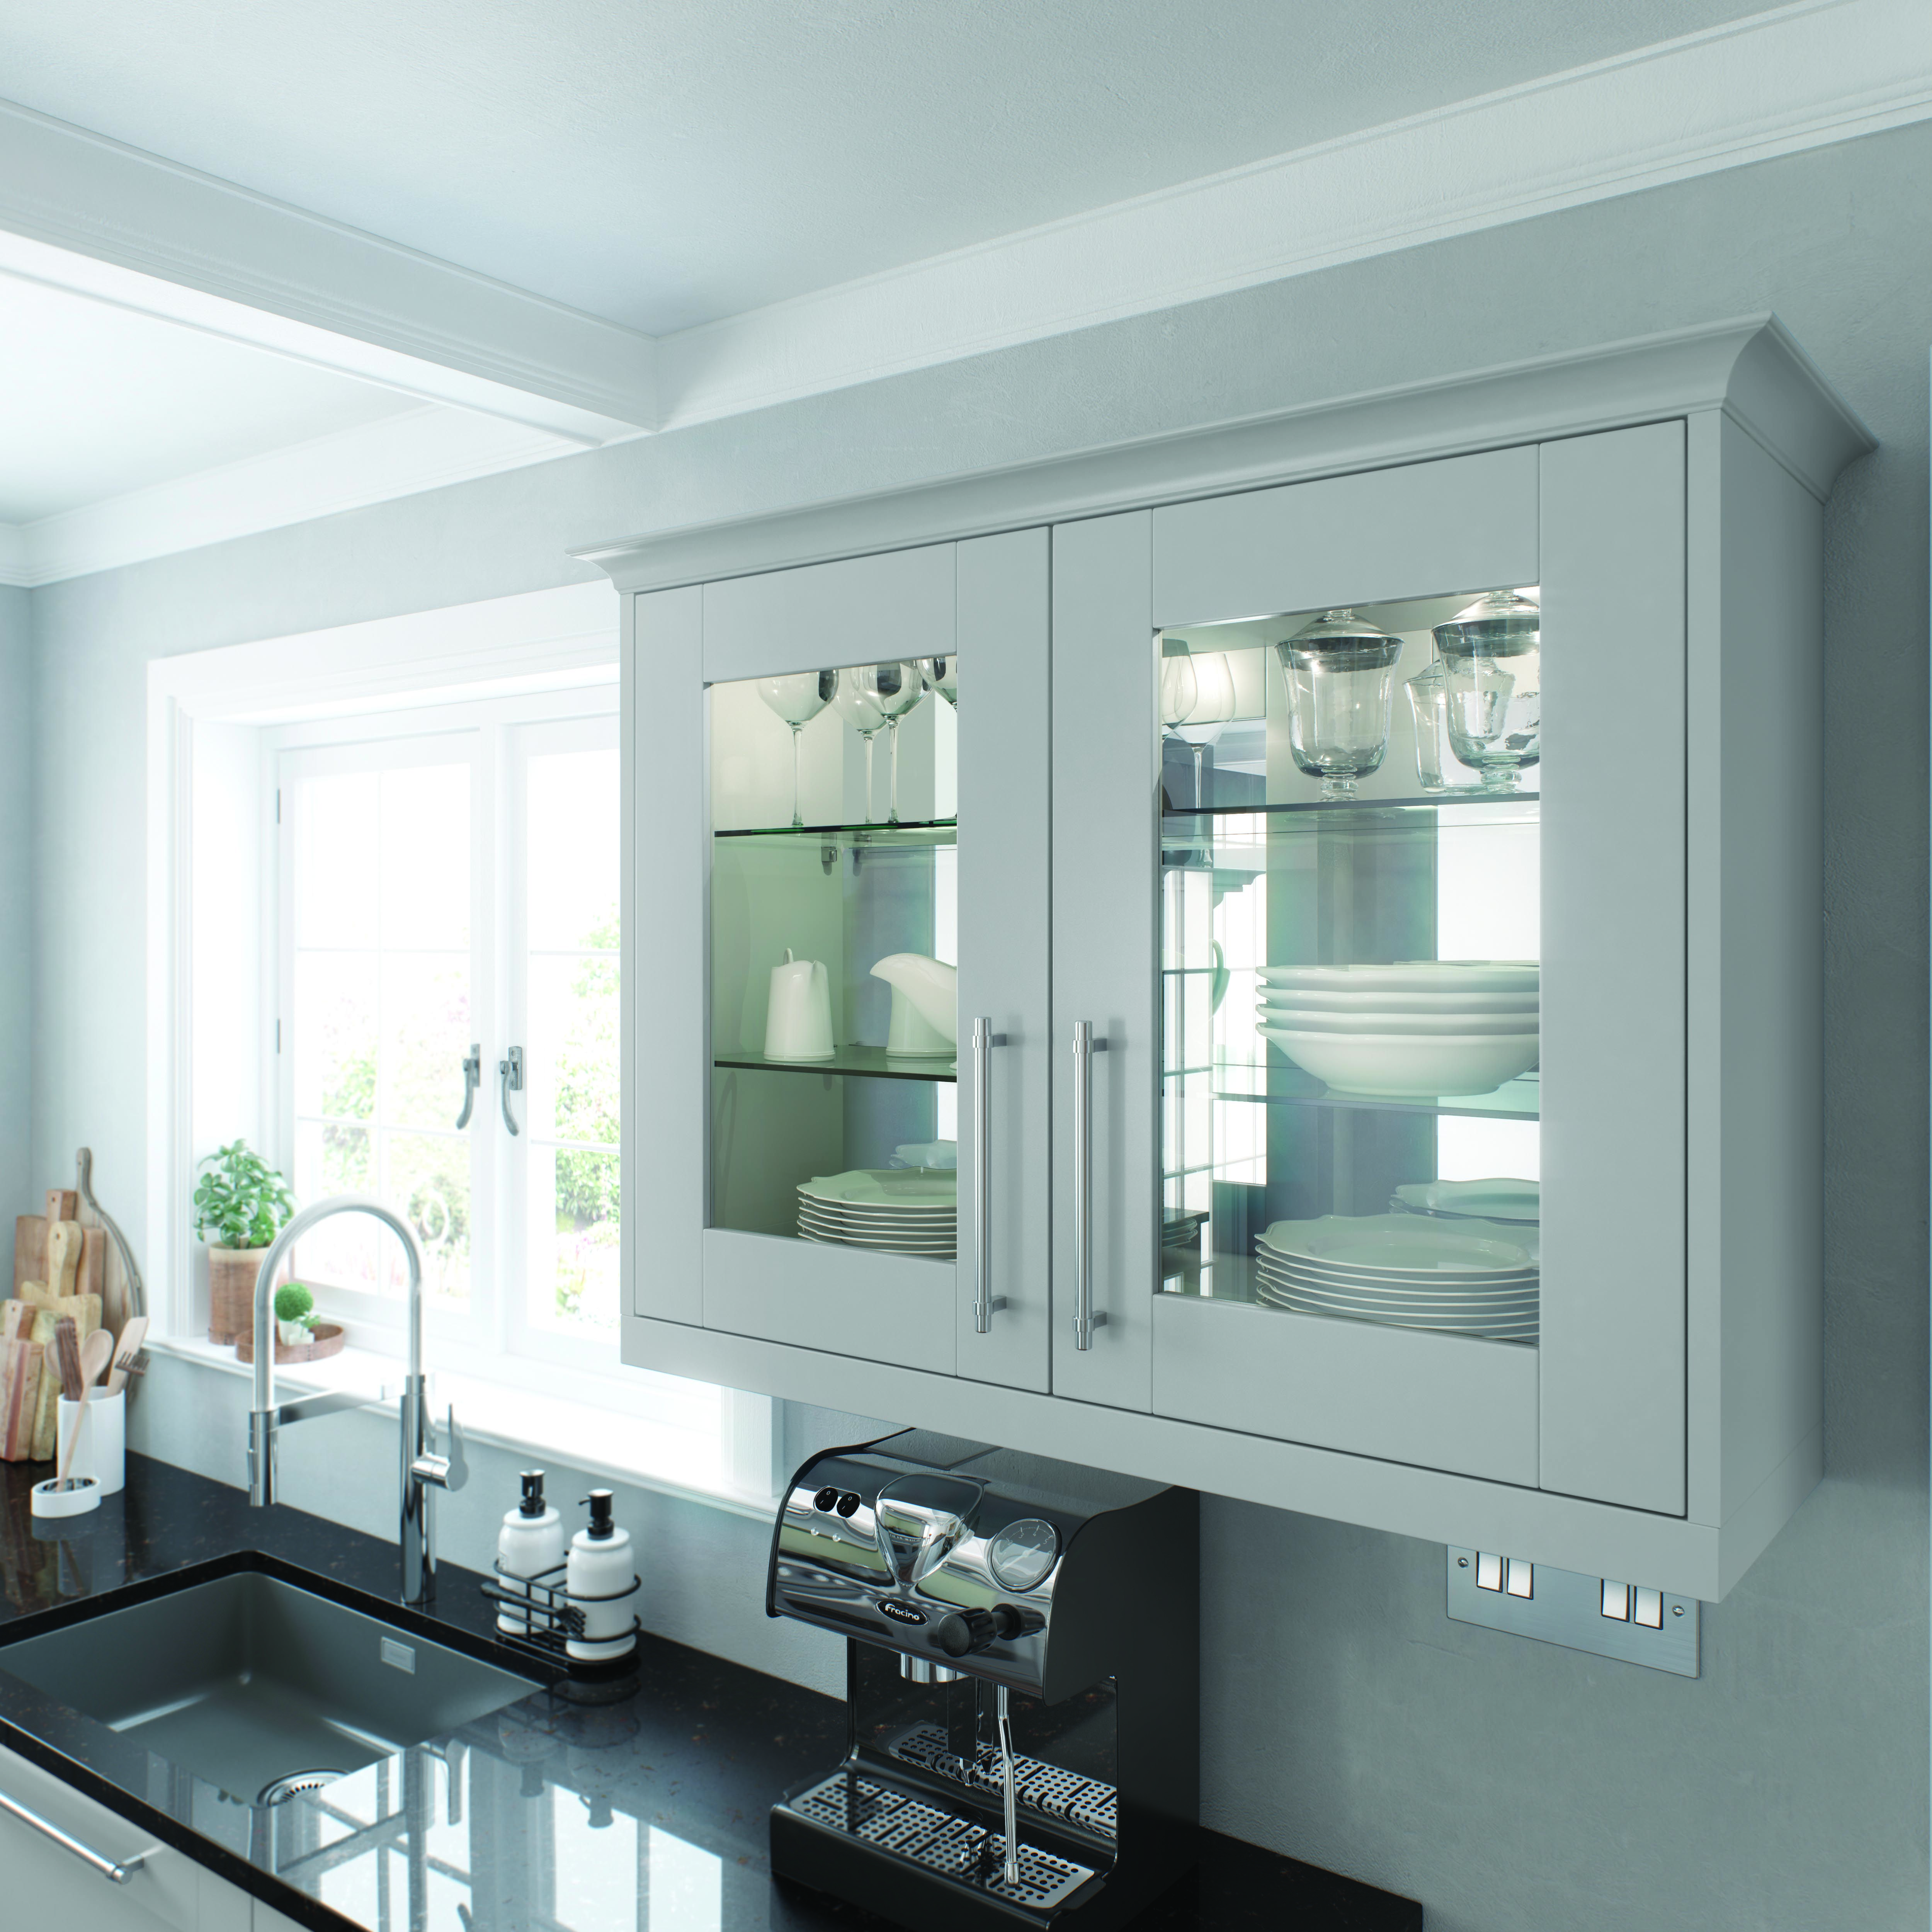 Mirrored Back Panel | Architectural | Pinterest | Kitchen showrooms ...